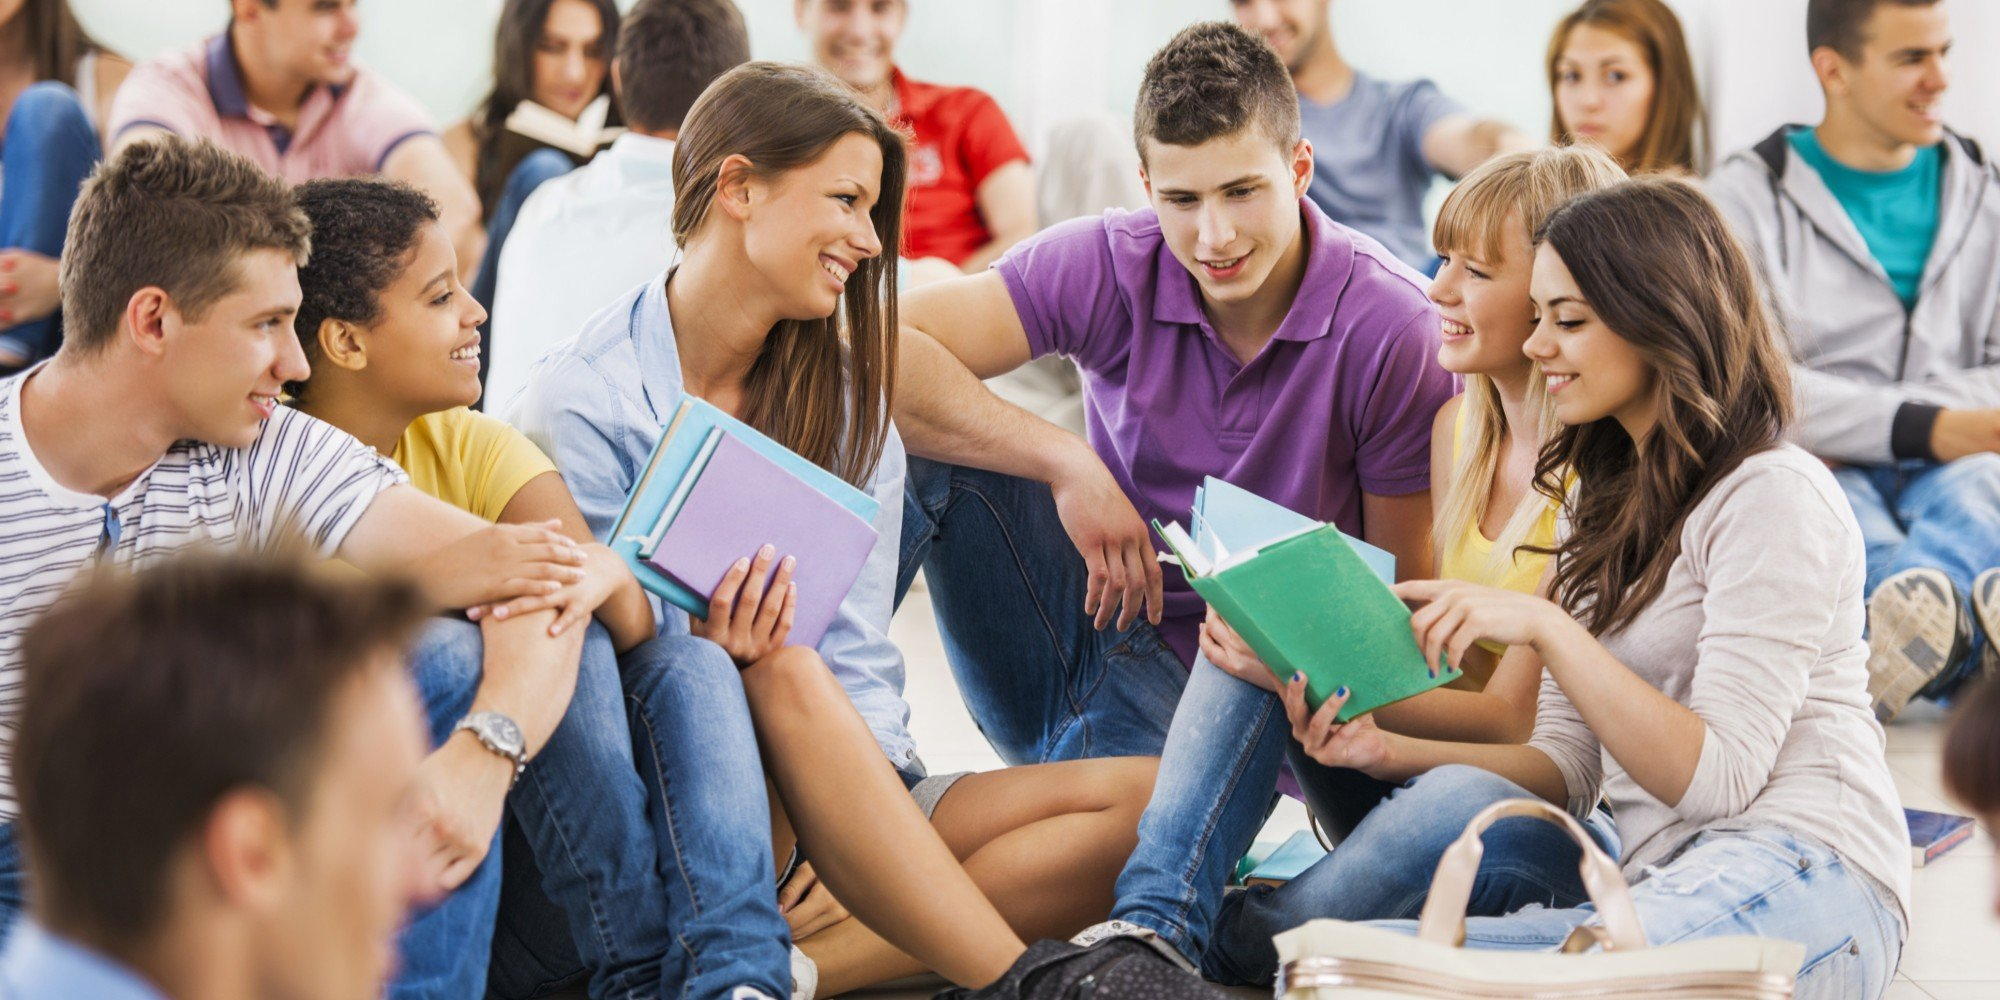 history research paper topics for college students Custom research papers writing site online custom research paper writing is on the top of the trend among high school, college and university students today.